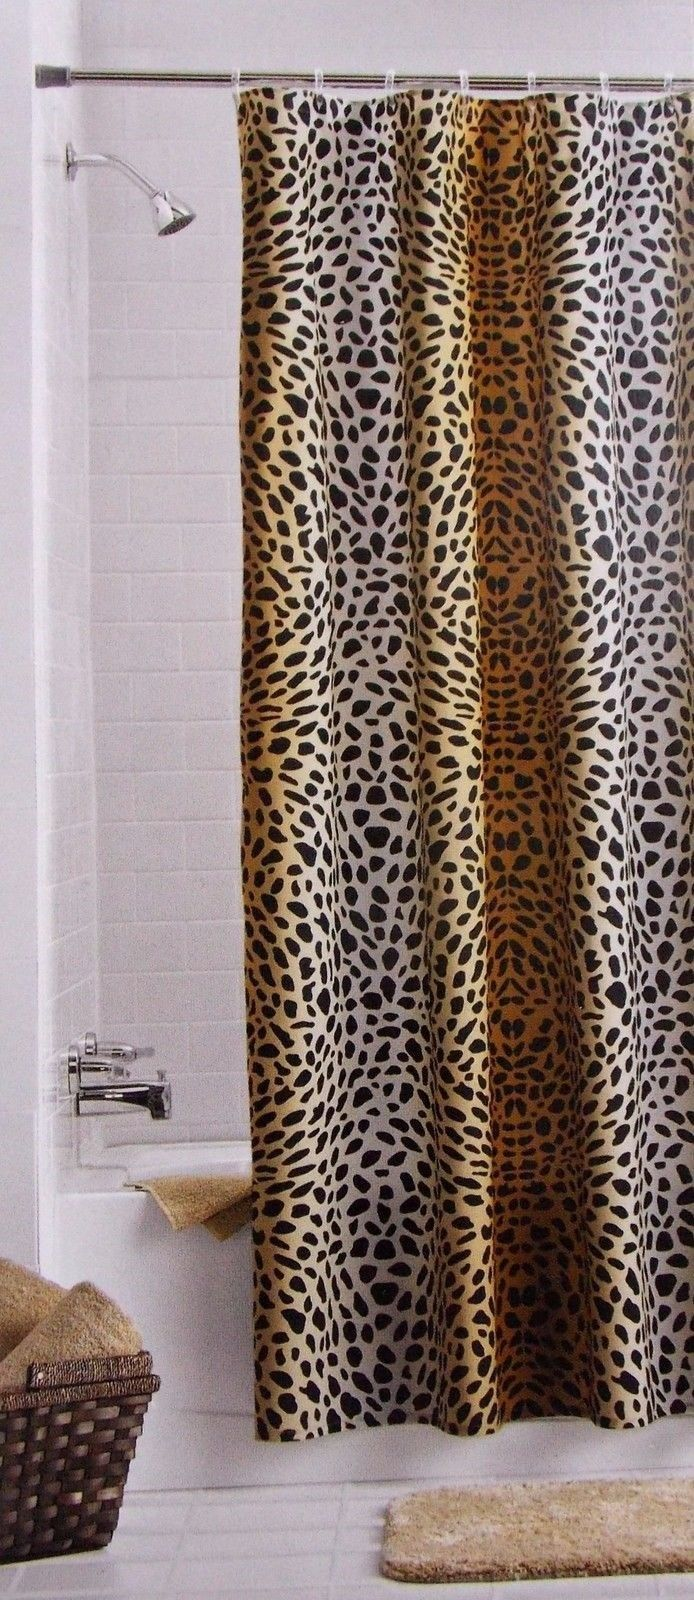 Cheetah Fabric Shower Curtain 70 X72 Ombre And 50 Similar Items